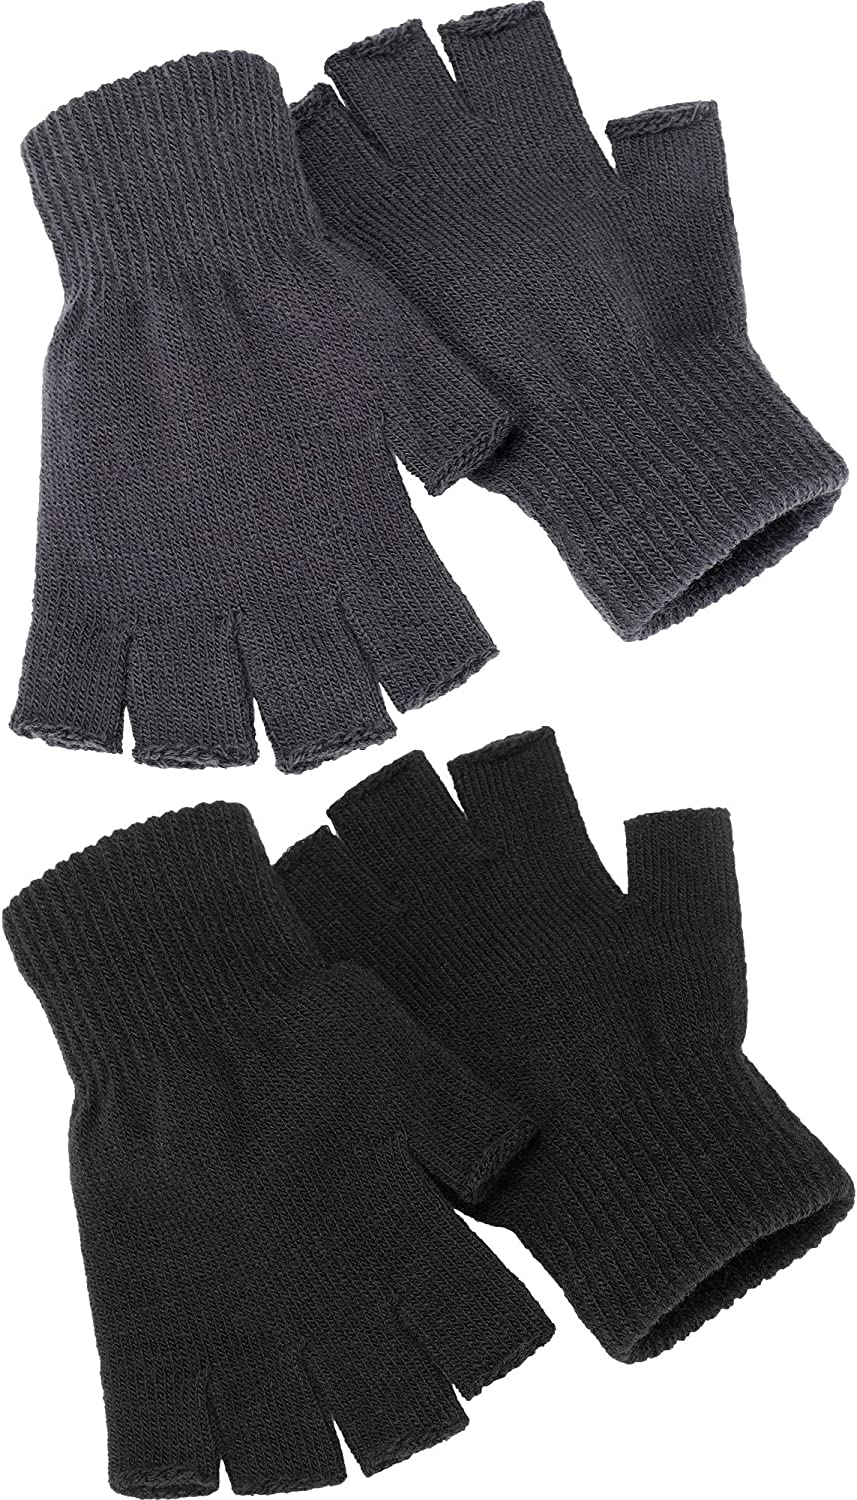 Satinior 2 Pair Unisex Half Finger Gloves Winter Stretchy Knit Fingerless Gloves in Common Size (Black+Grey)